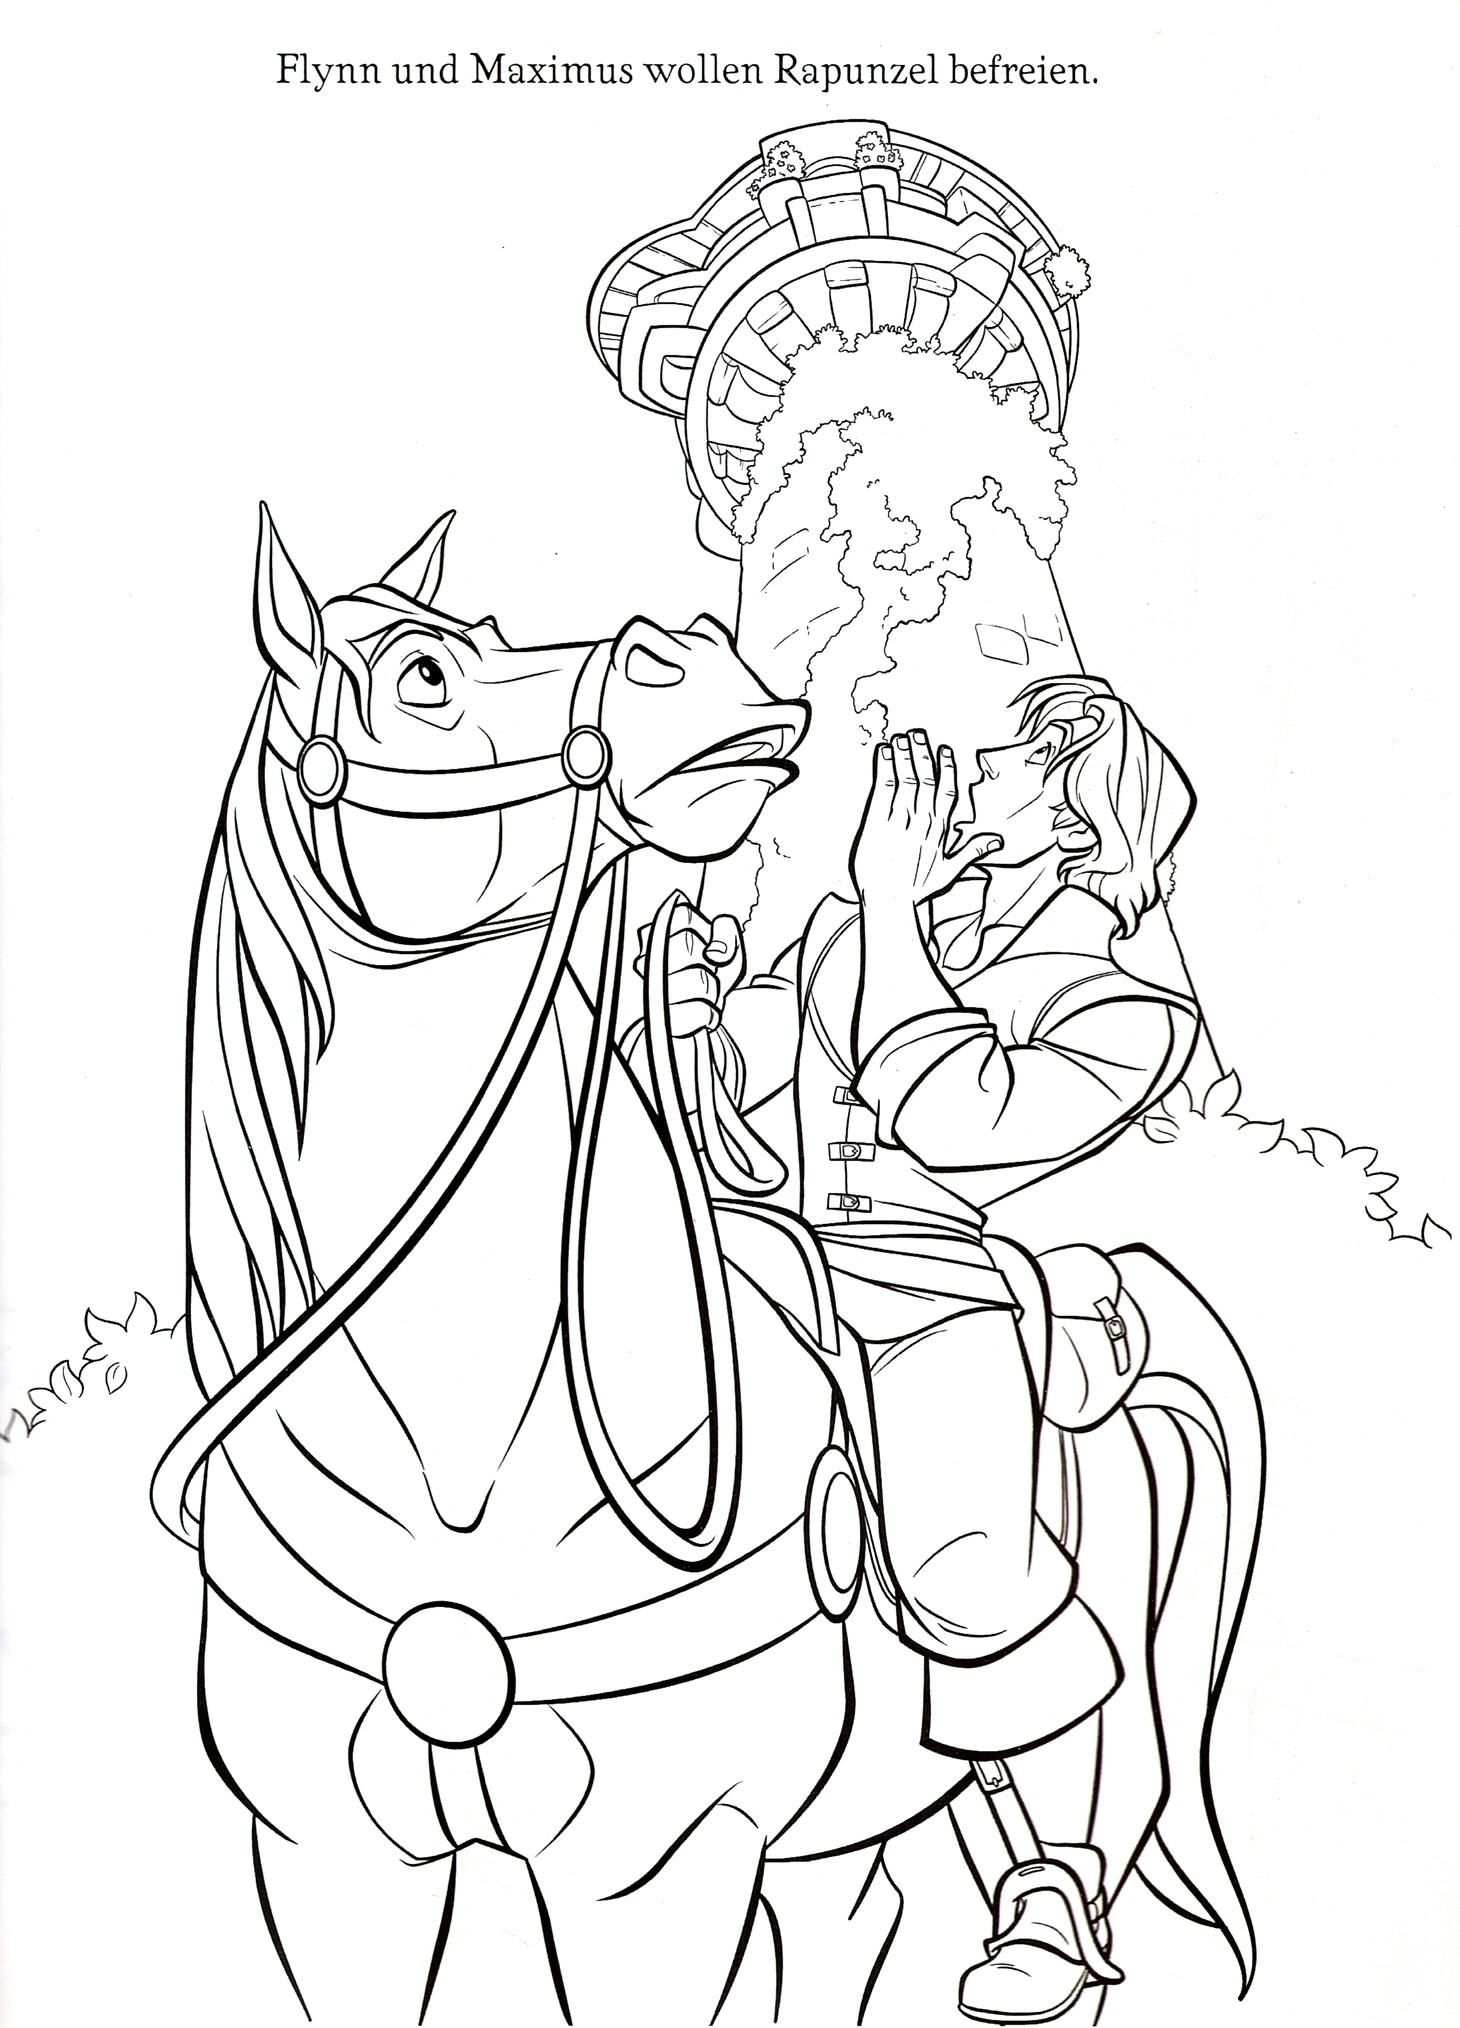 This Beautiful Rapunzel Coloring Sheet From Tangled Coloring Pages Is Perfect For Kids Who Will